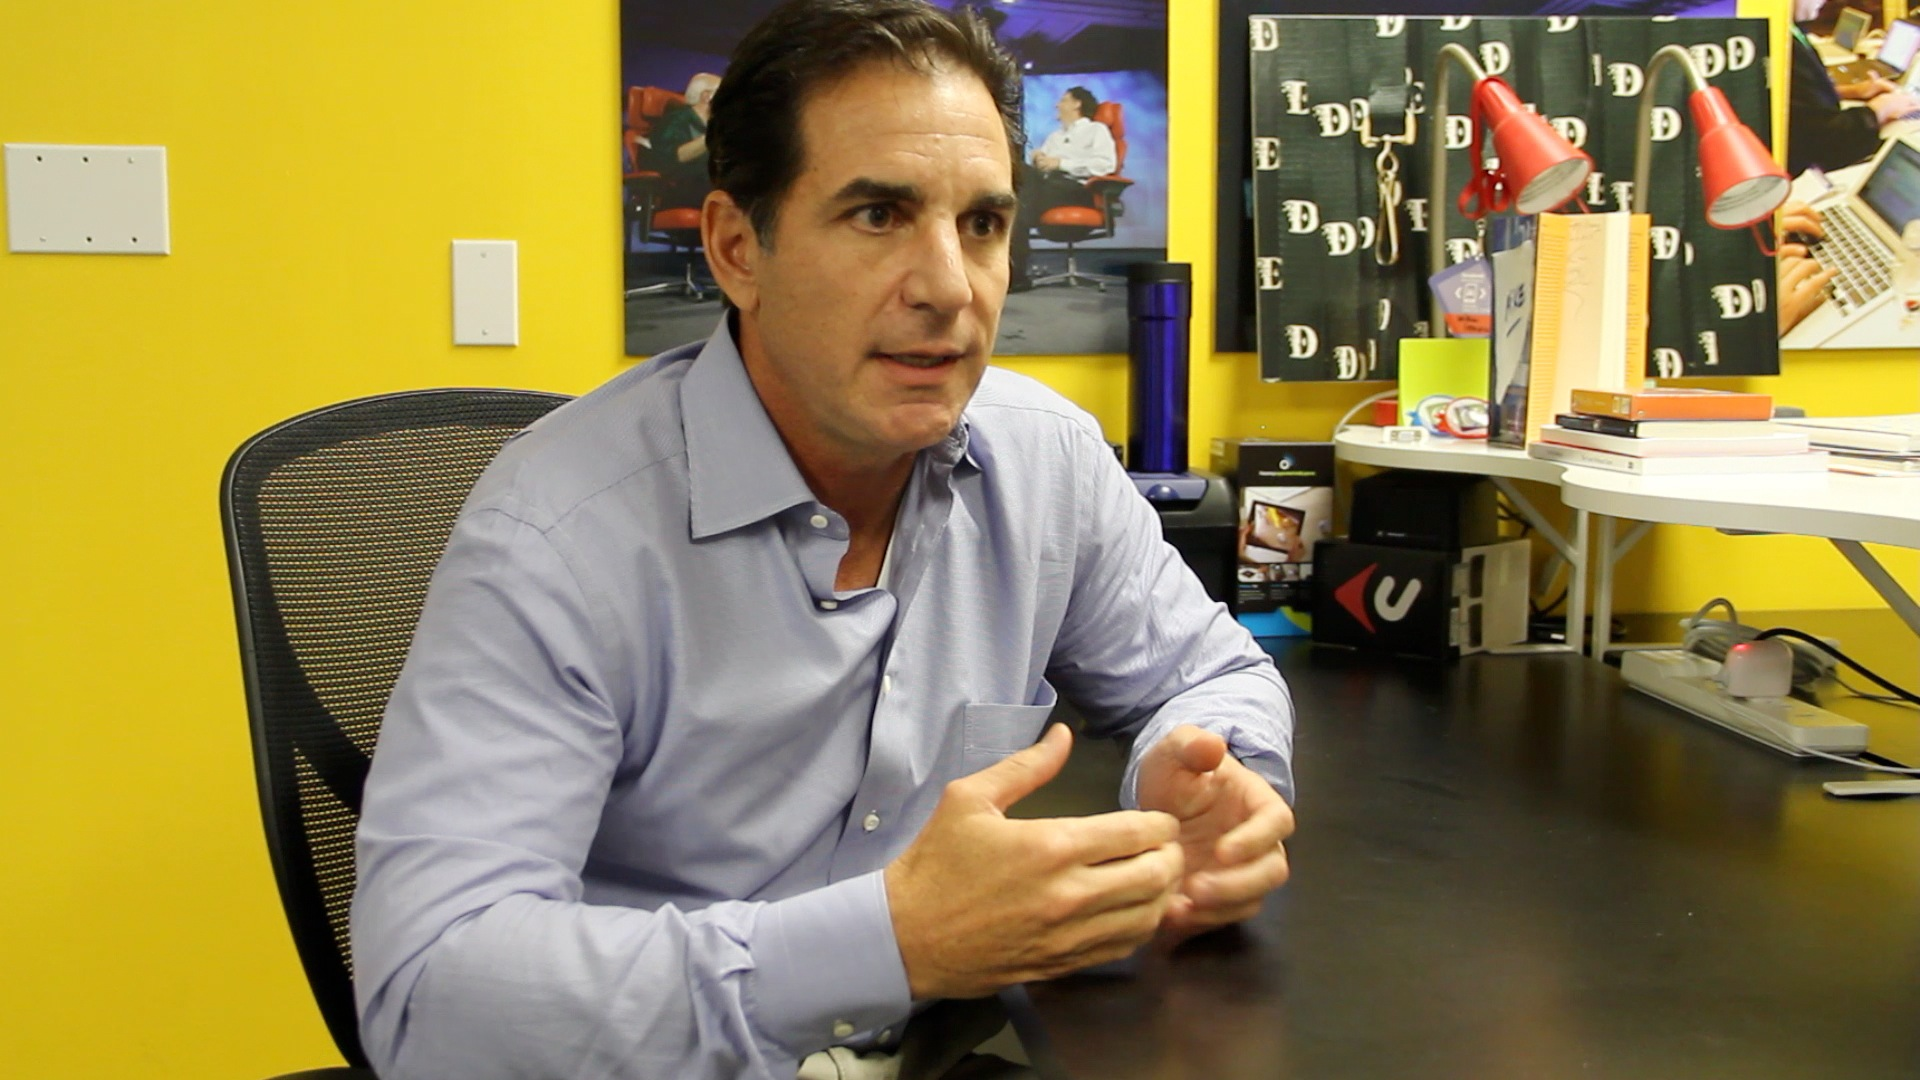 New AOL Networks CEO Bob Lord Talks About Where the Online Ad Market Is Headed